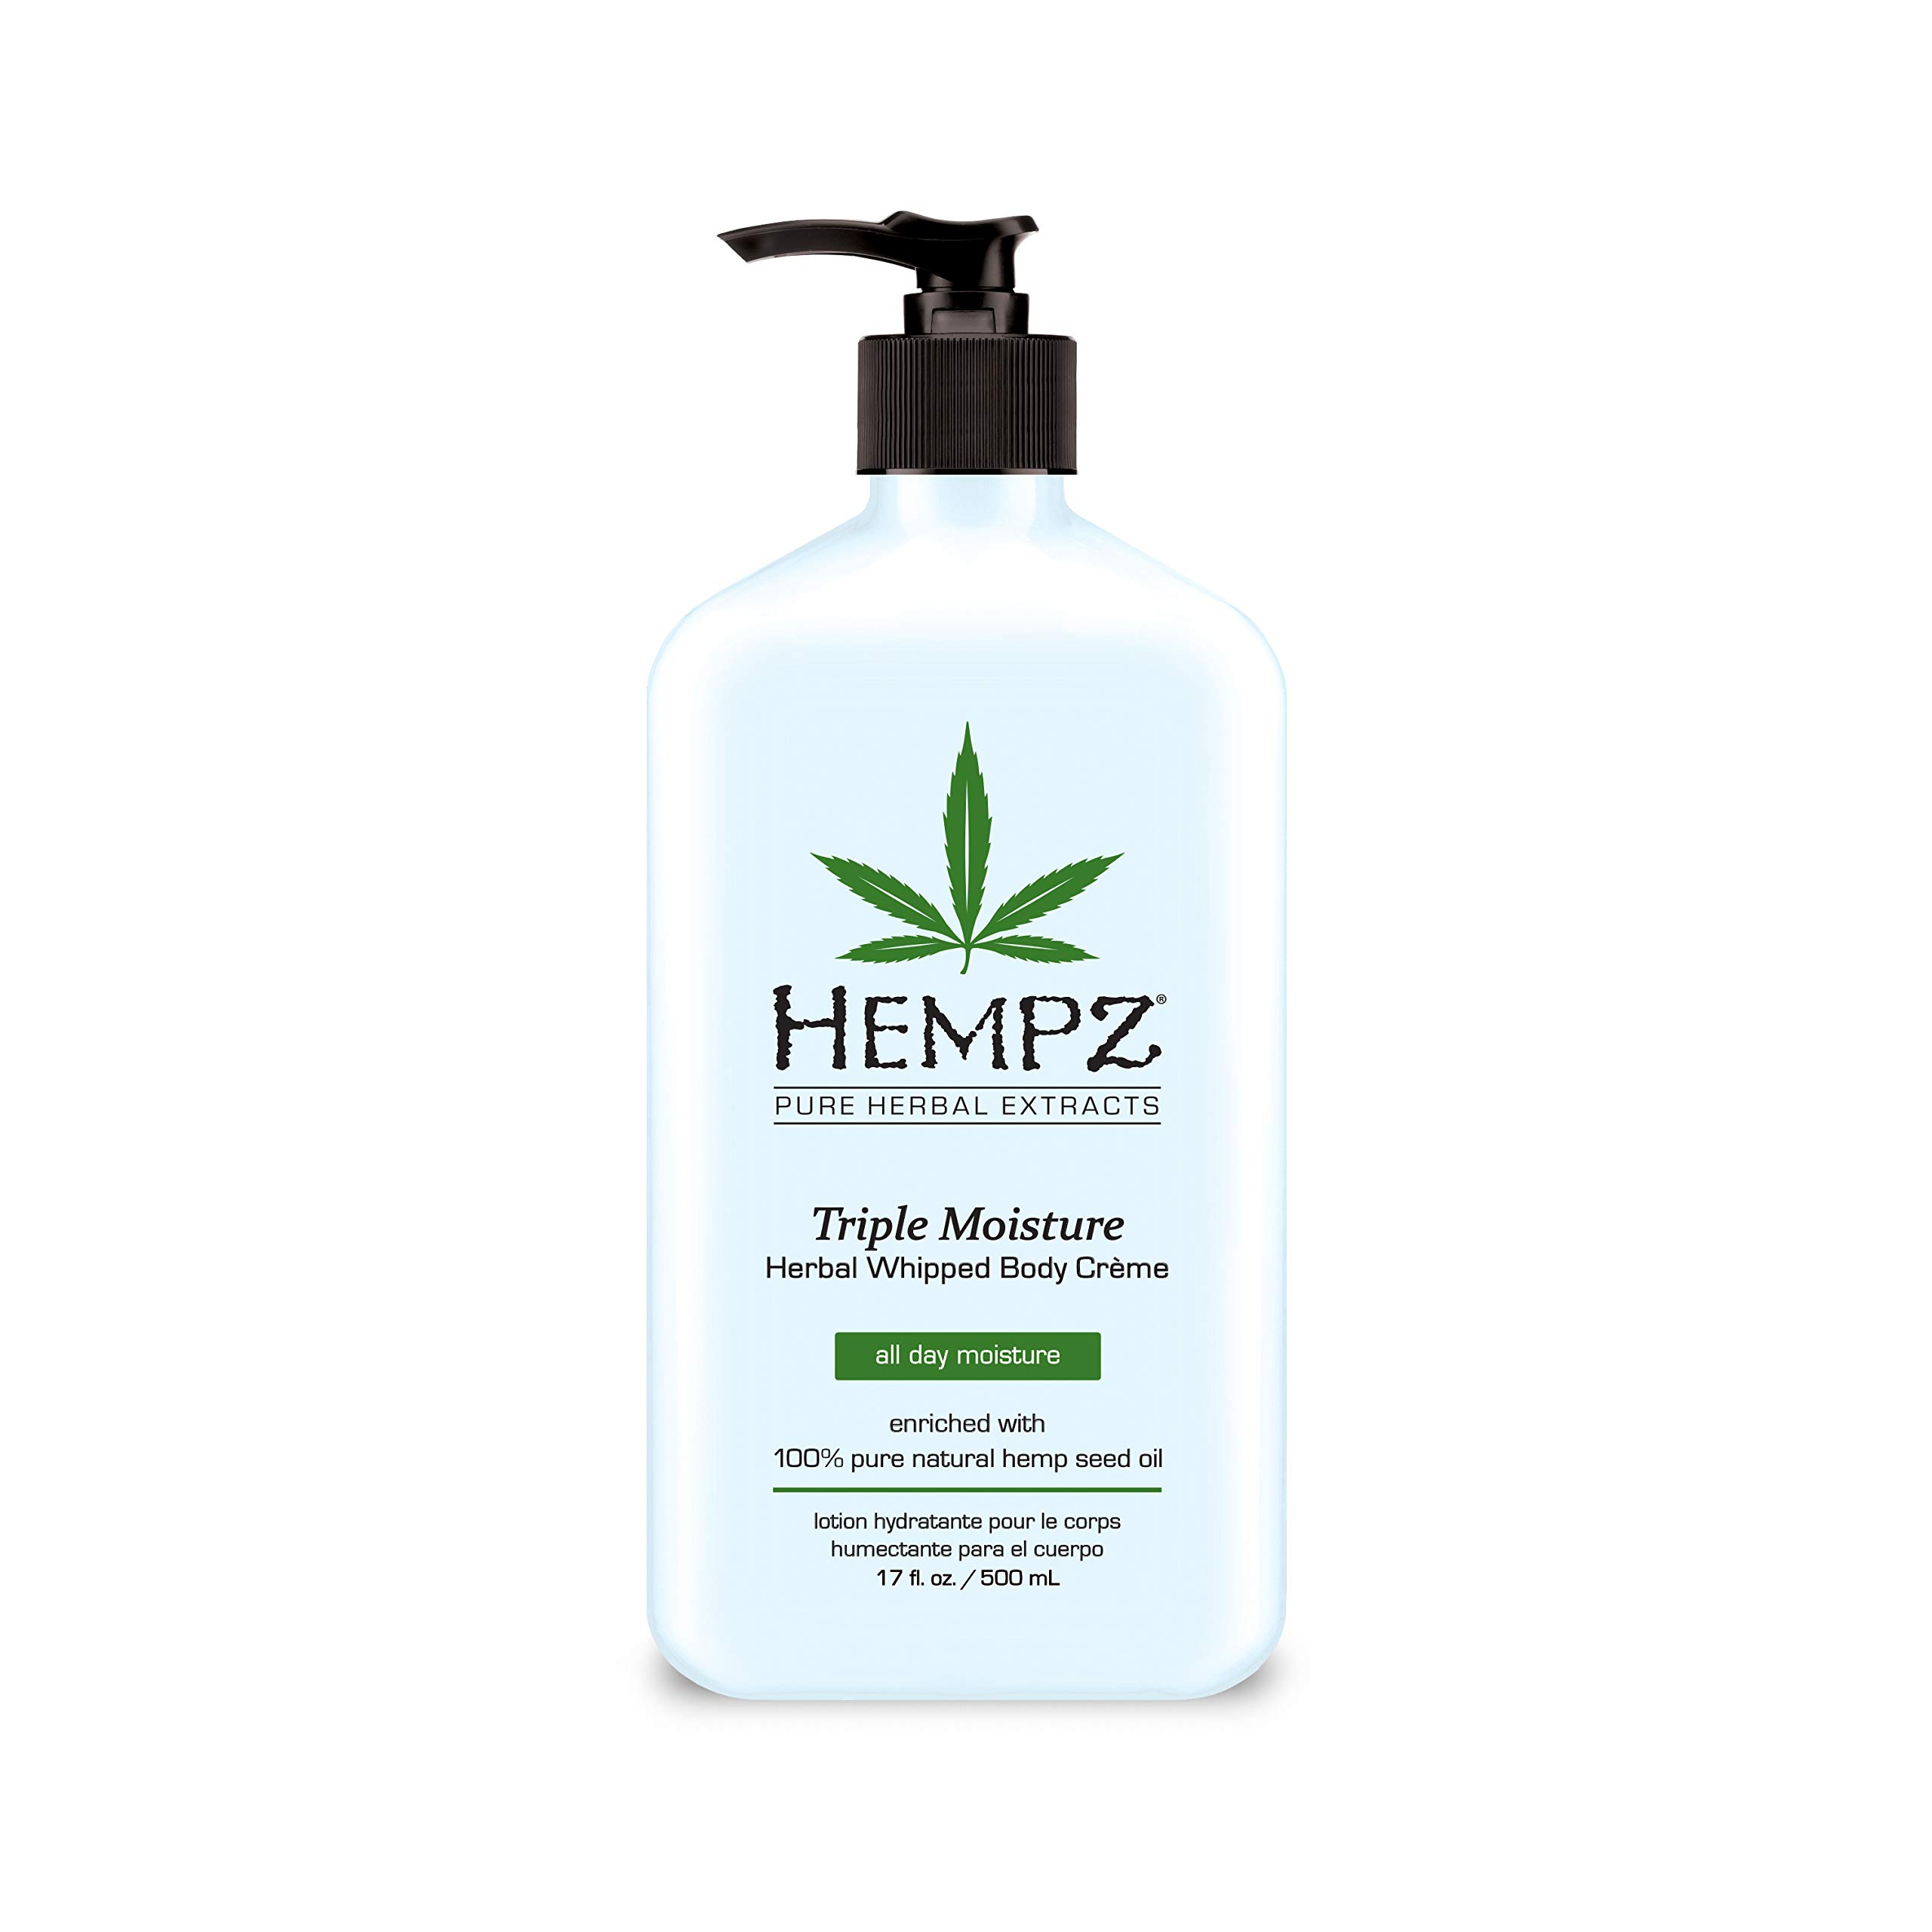 Hempz Triple Moisture Herbal Whipped